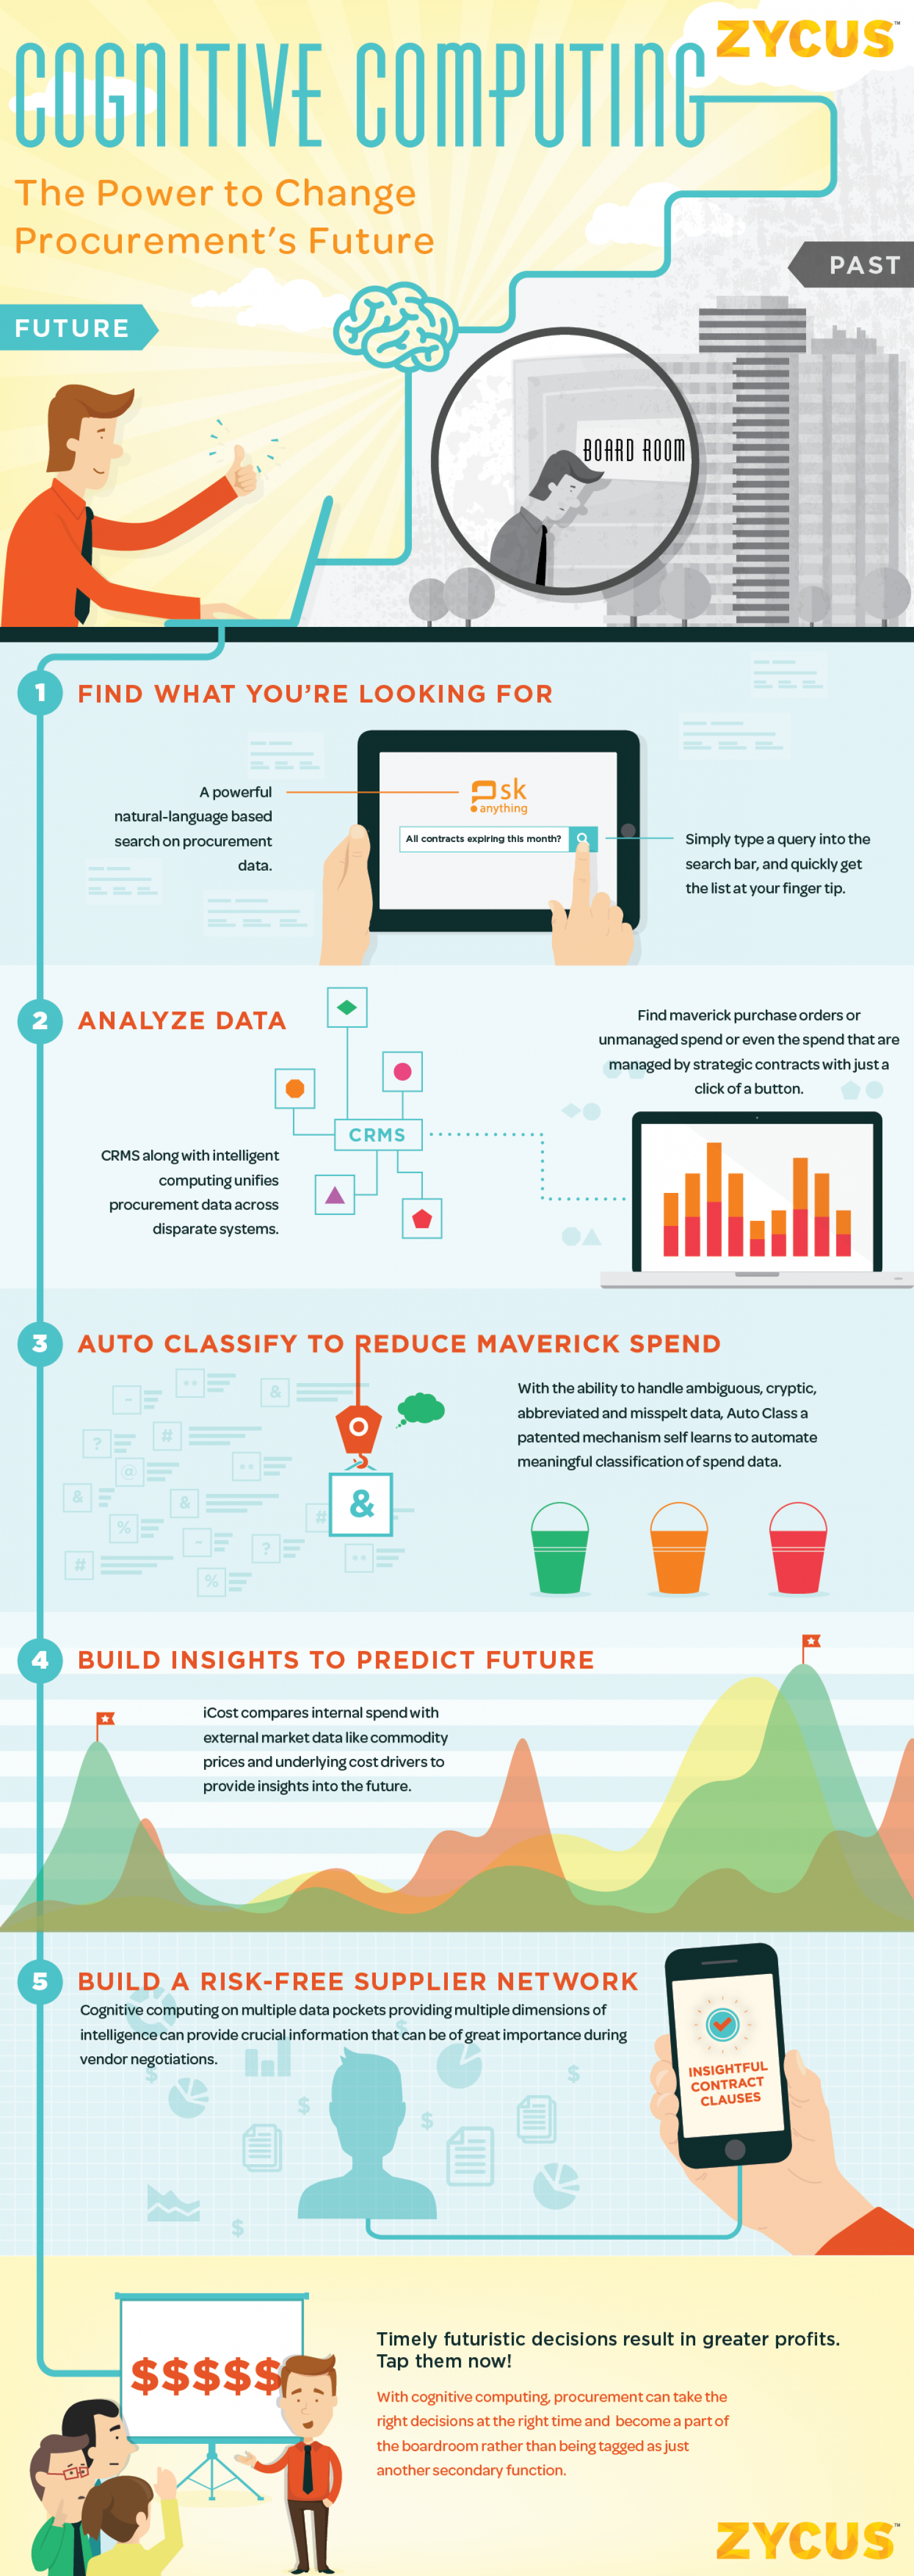 What is cognitive computing Infographic